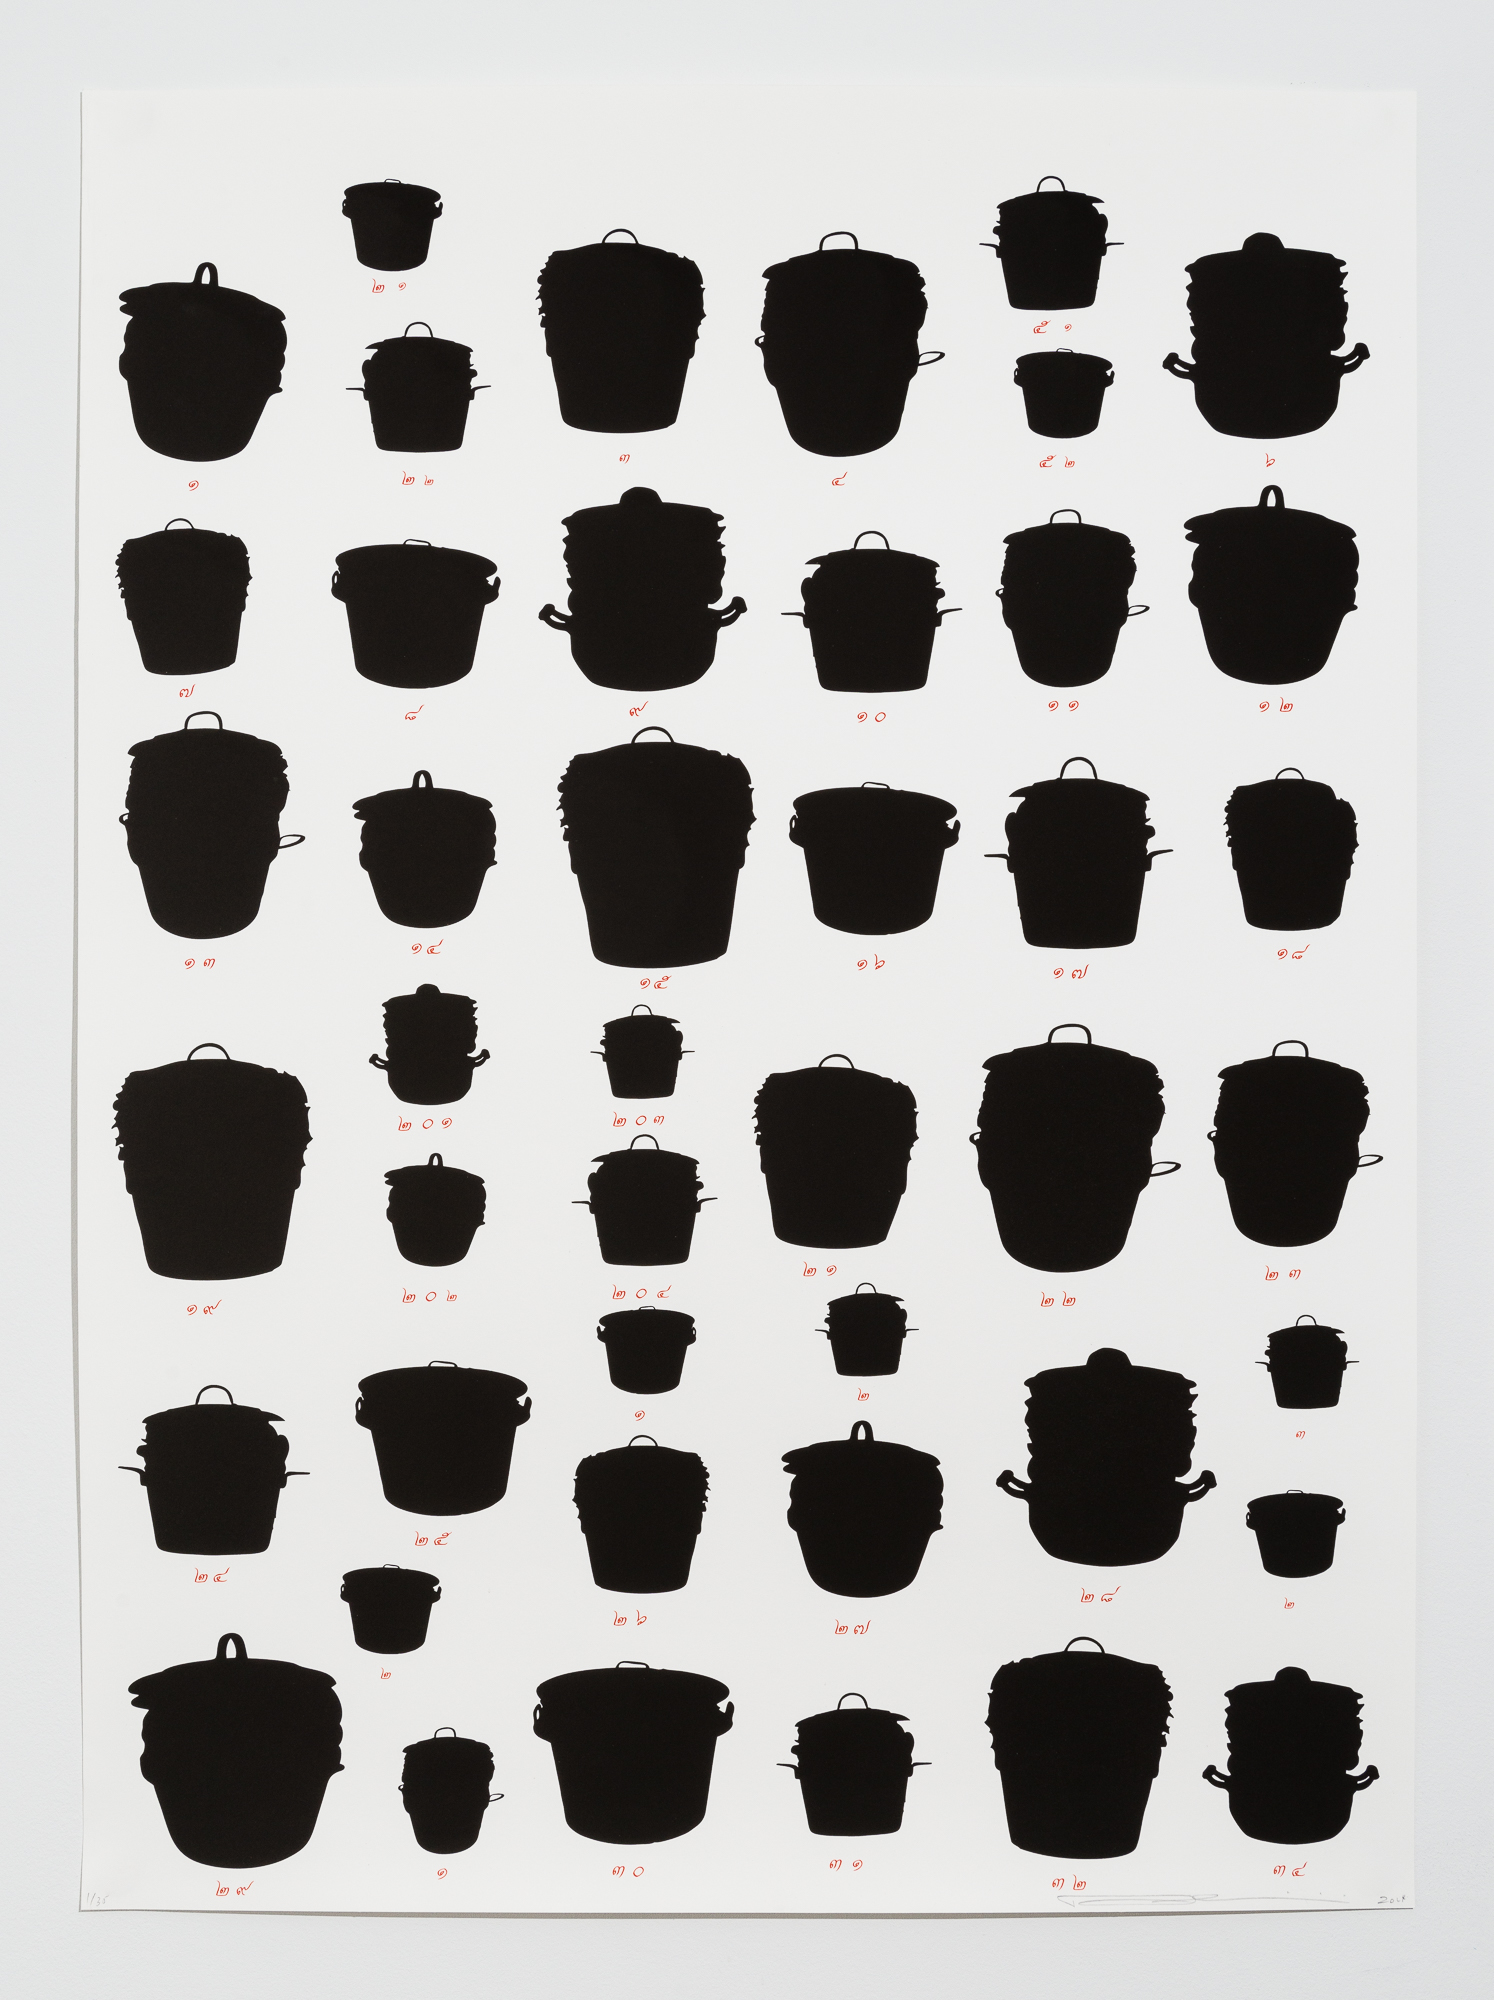 """(1 of 3) Rirkrit Tiravanija, """"Untitled,"""" 2014, Lithograph, 45 x 33 inches each, Edition of 35"""